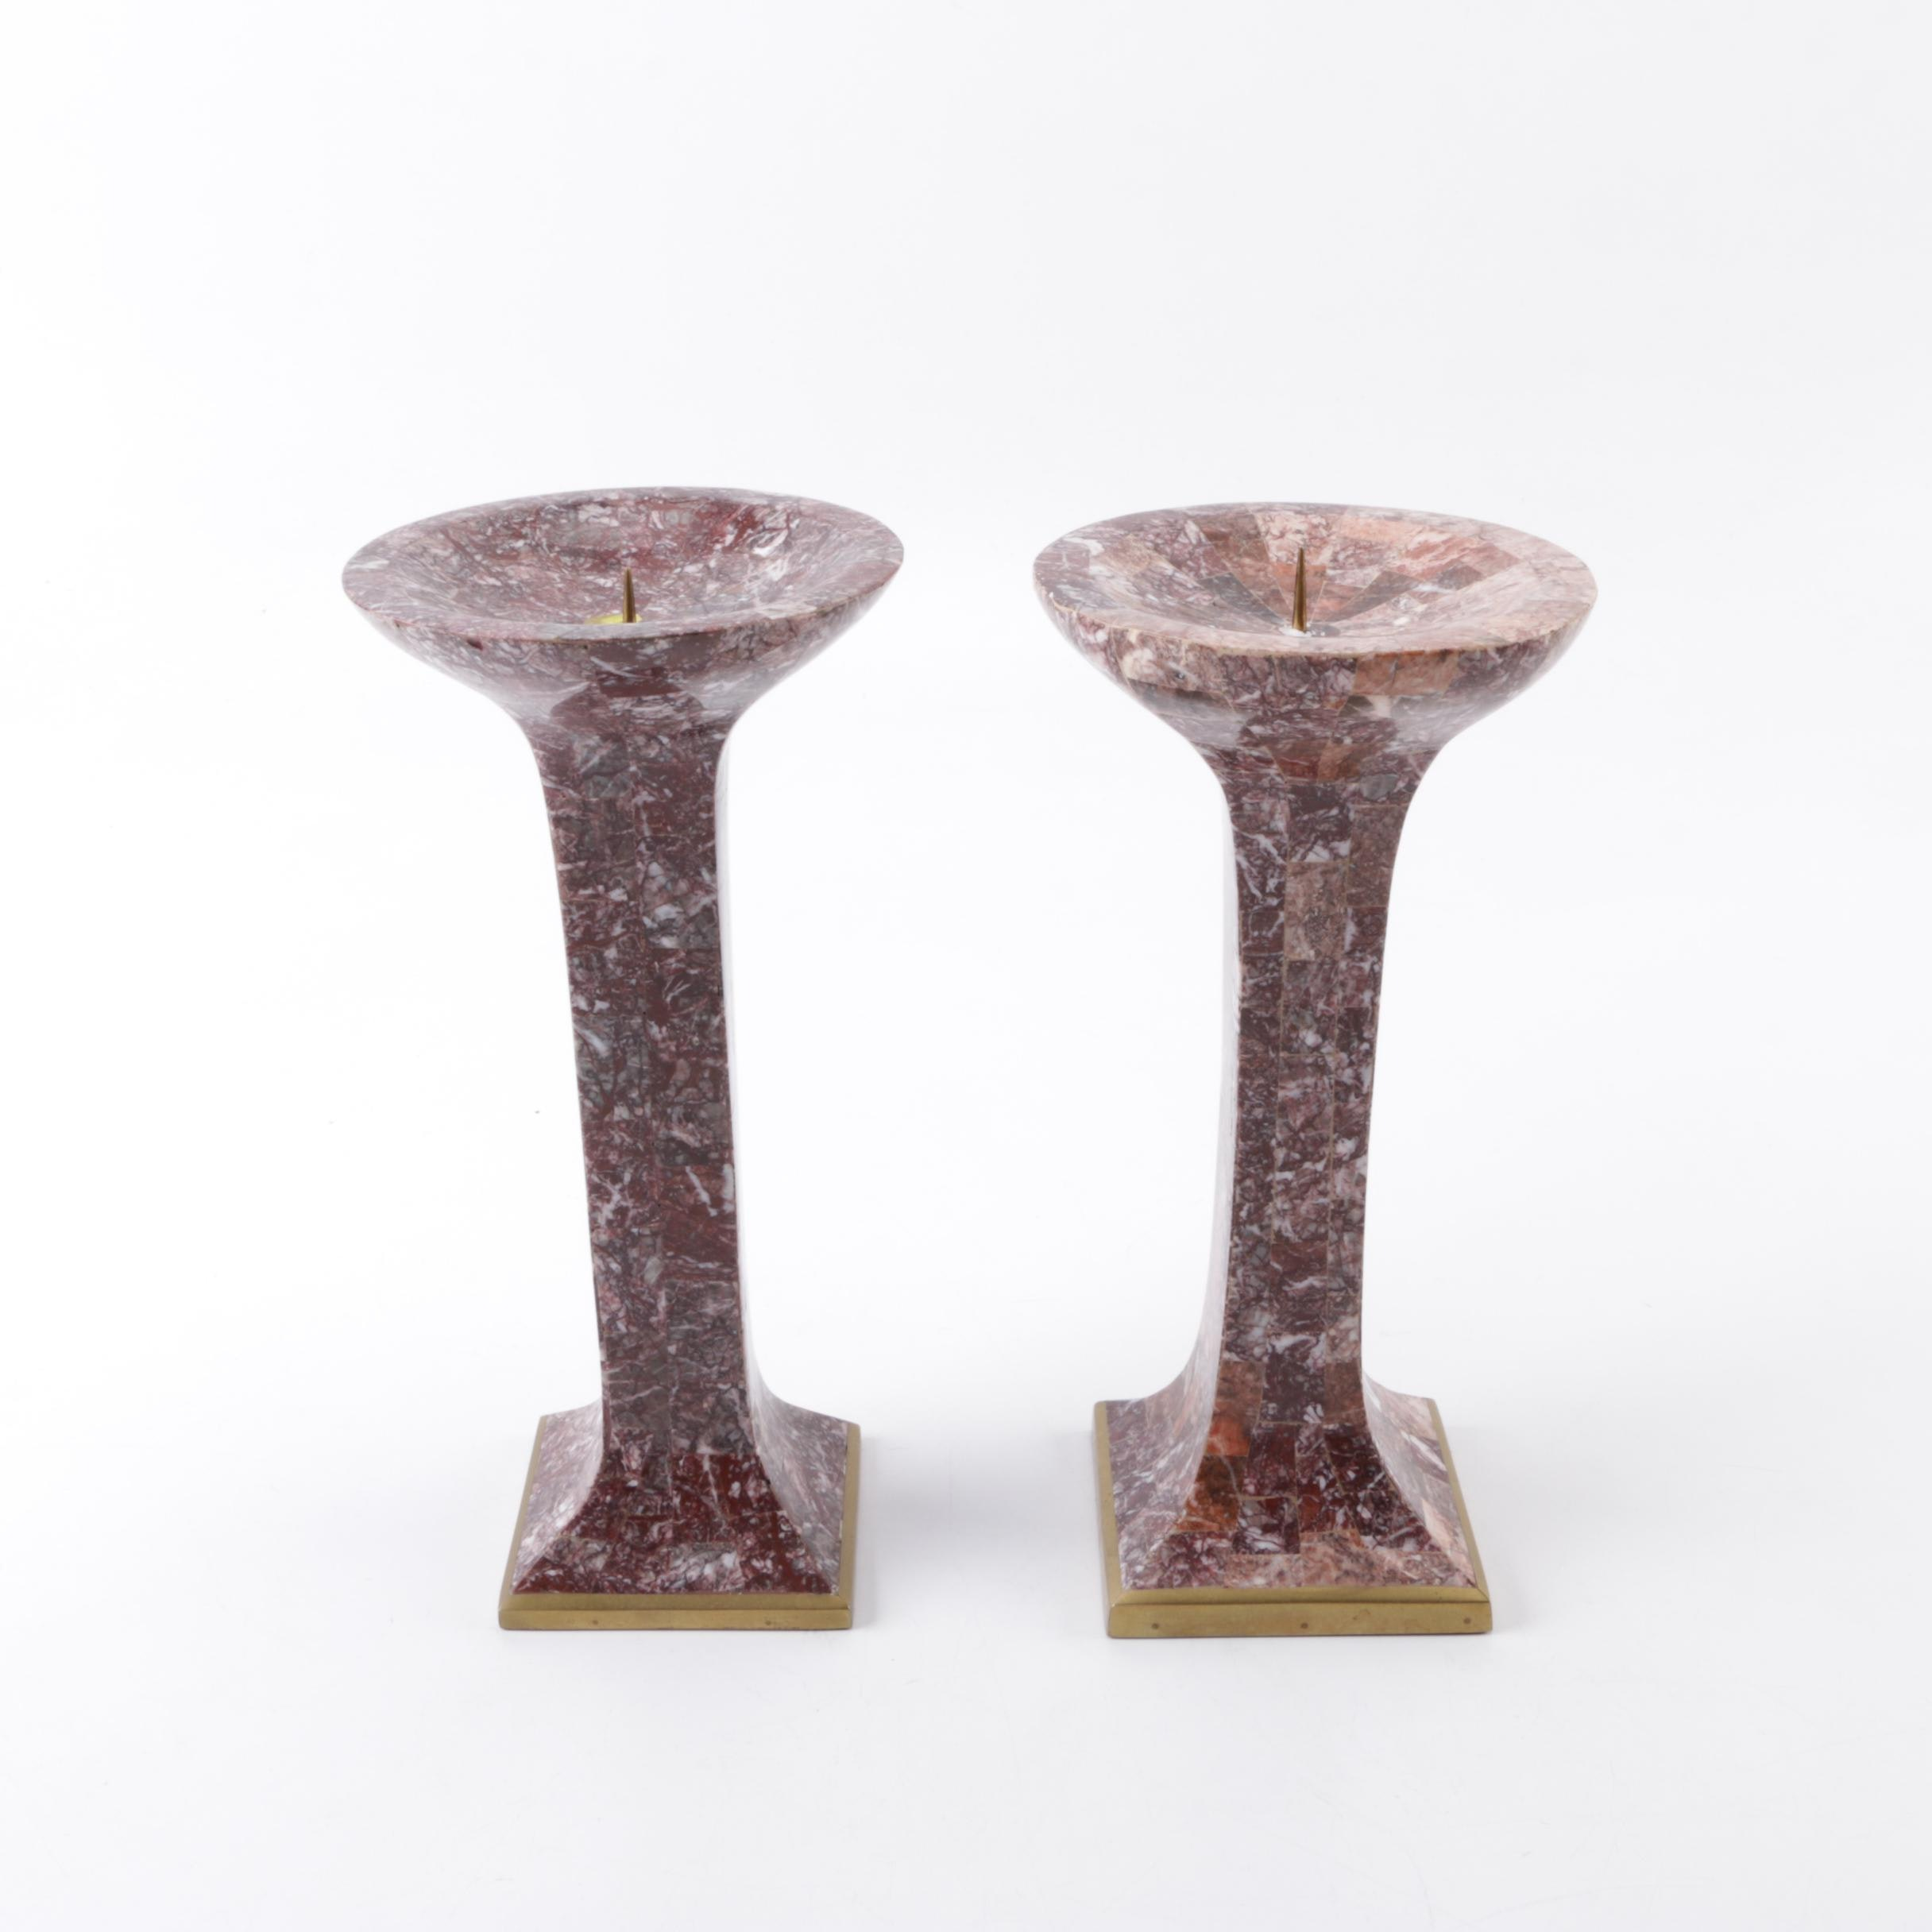 Pair of Marble Inlaid Candle Holders